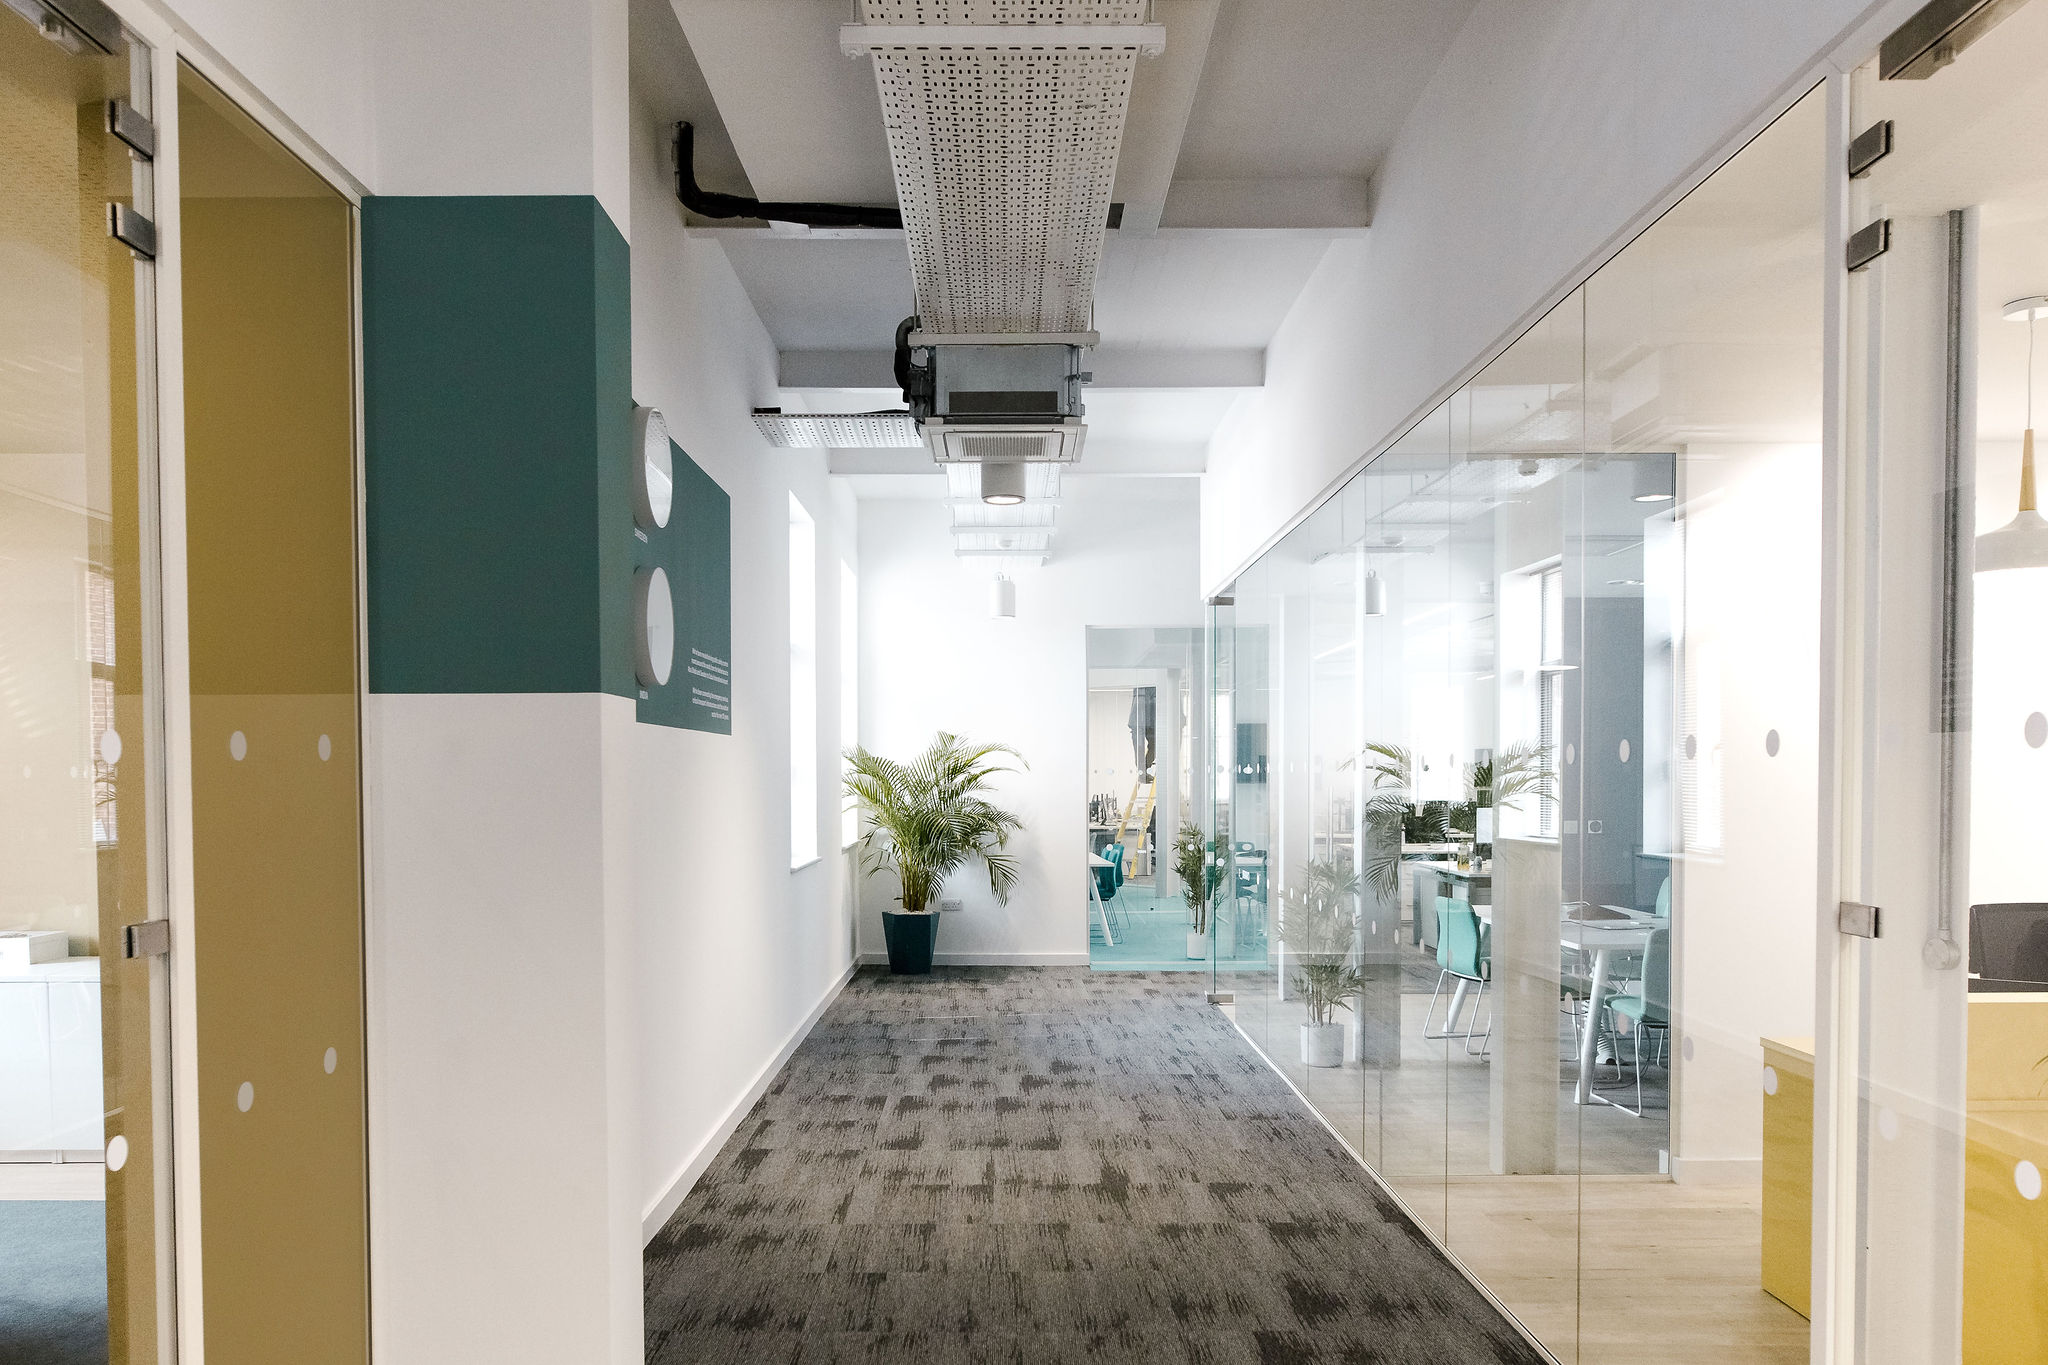 office space hull, hull retail space, hull business centres